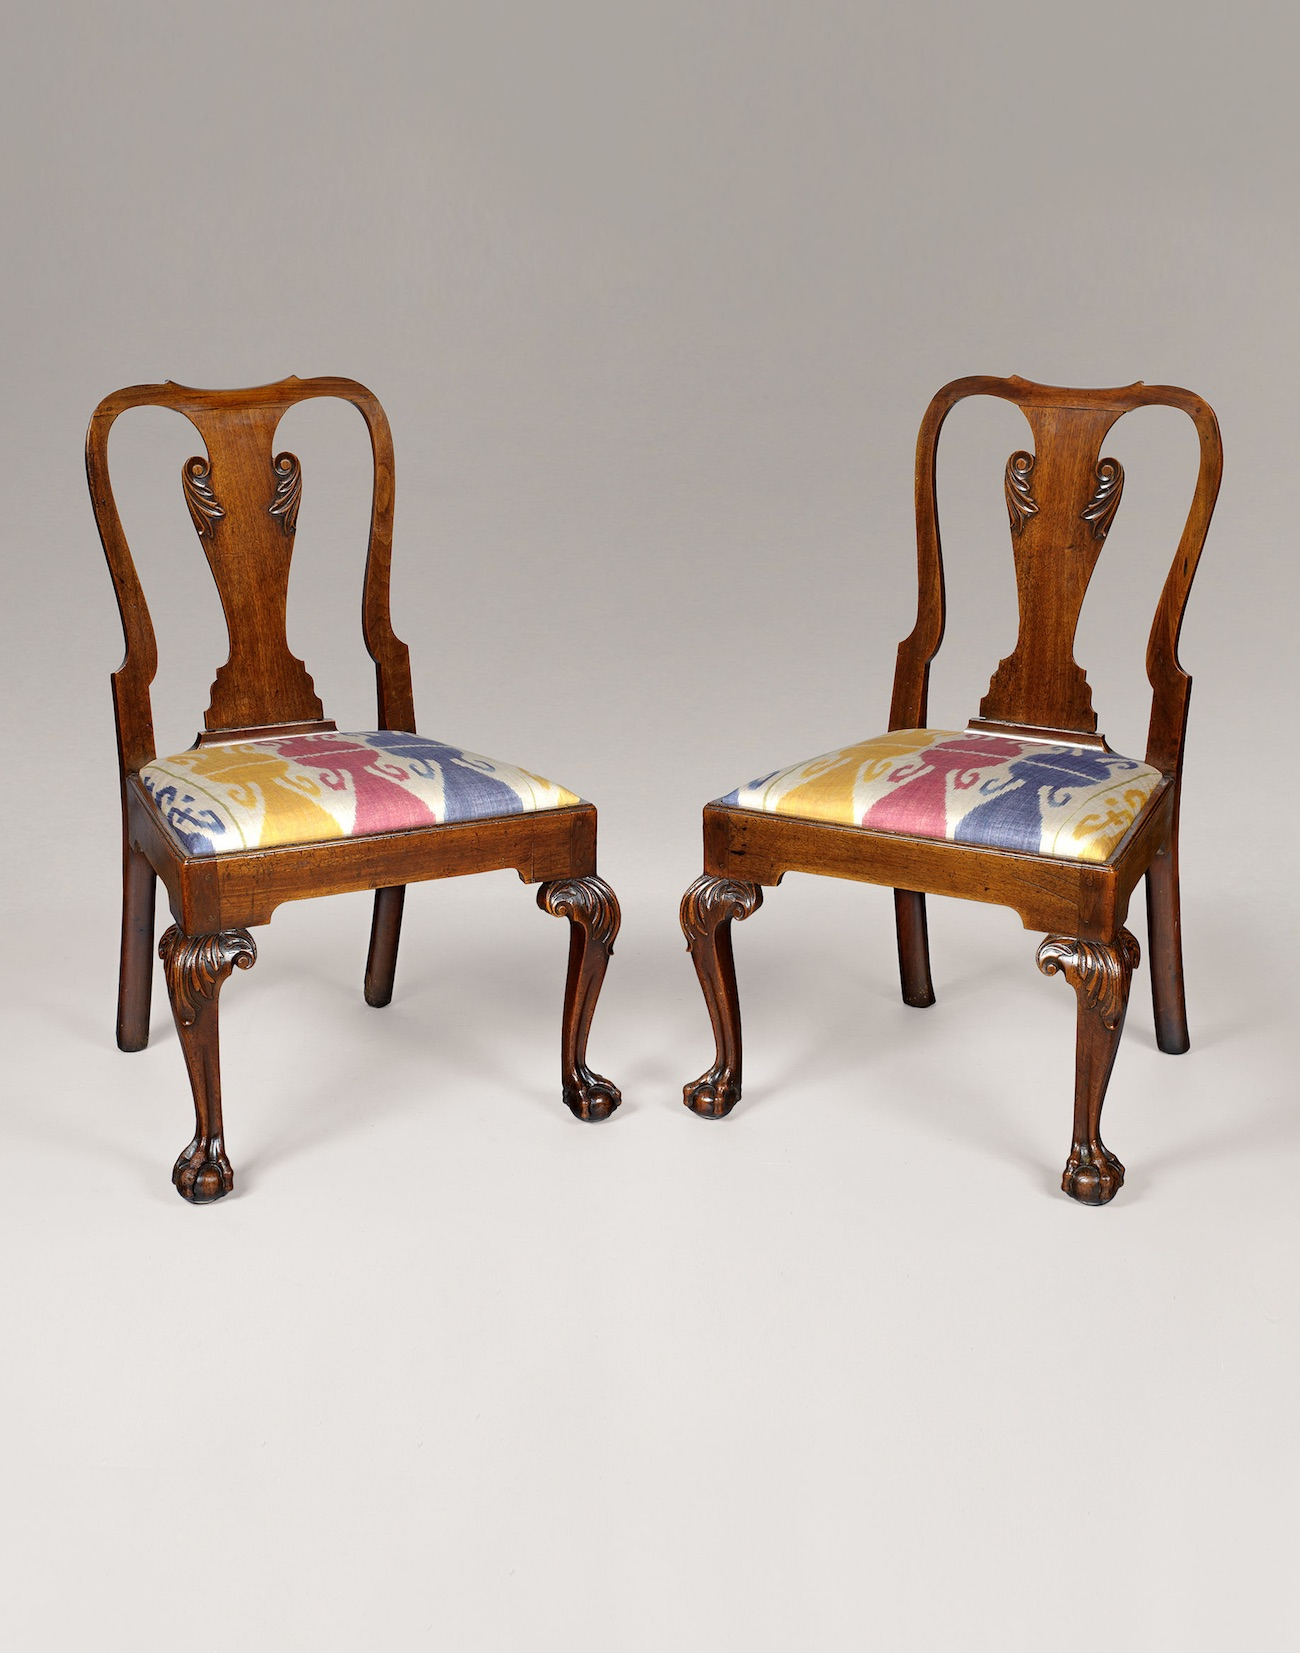 PAIR OF GEORGE II CARVED MAHOGANY CHAIRS.